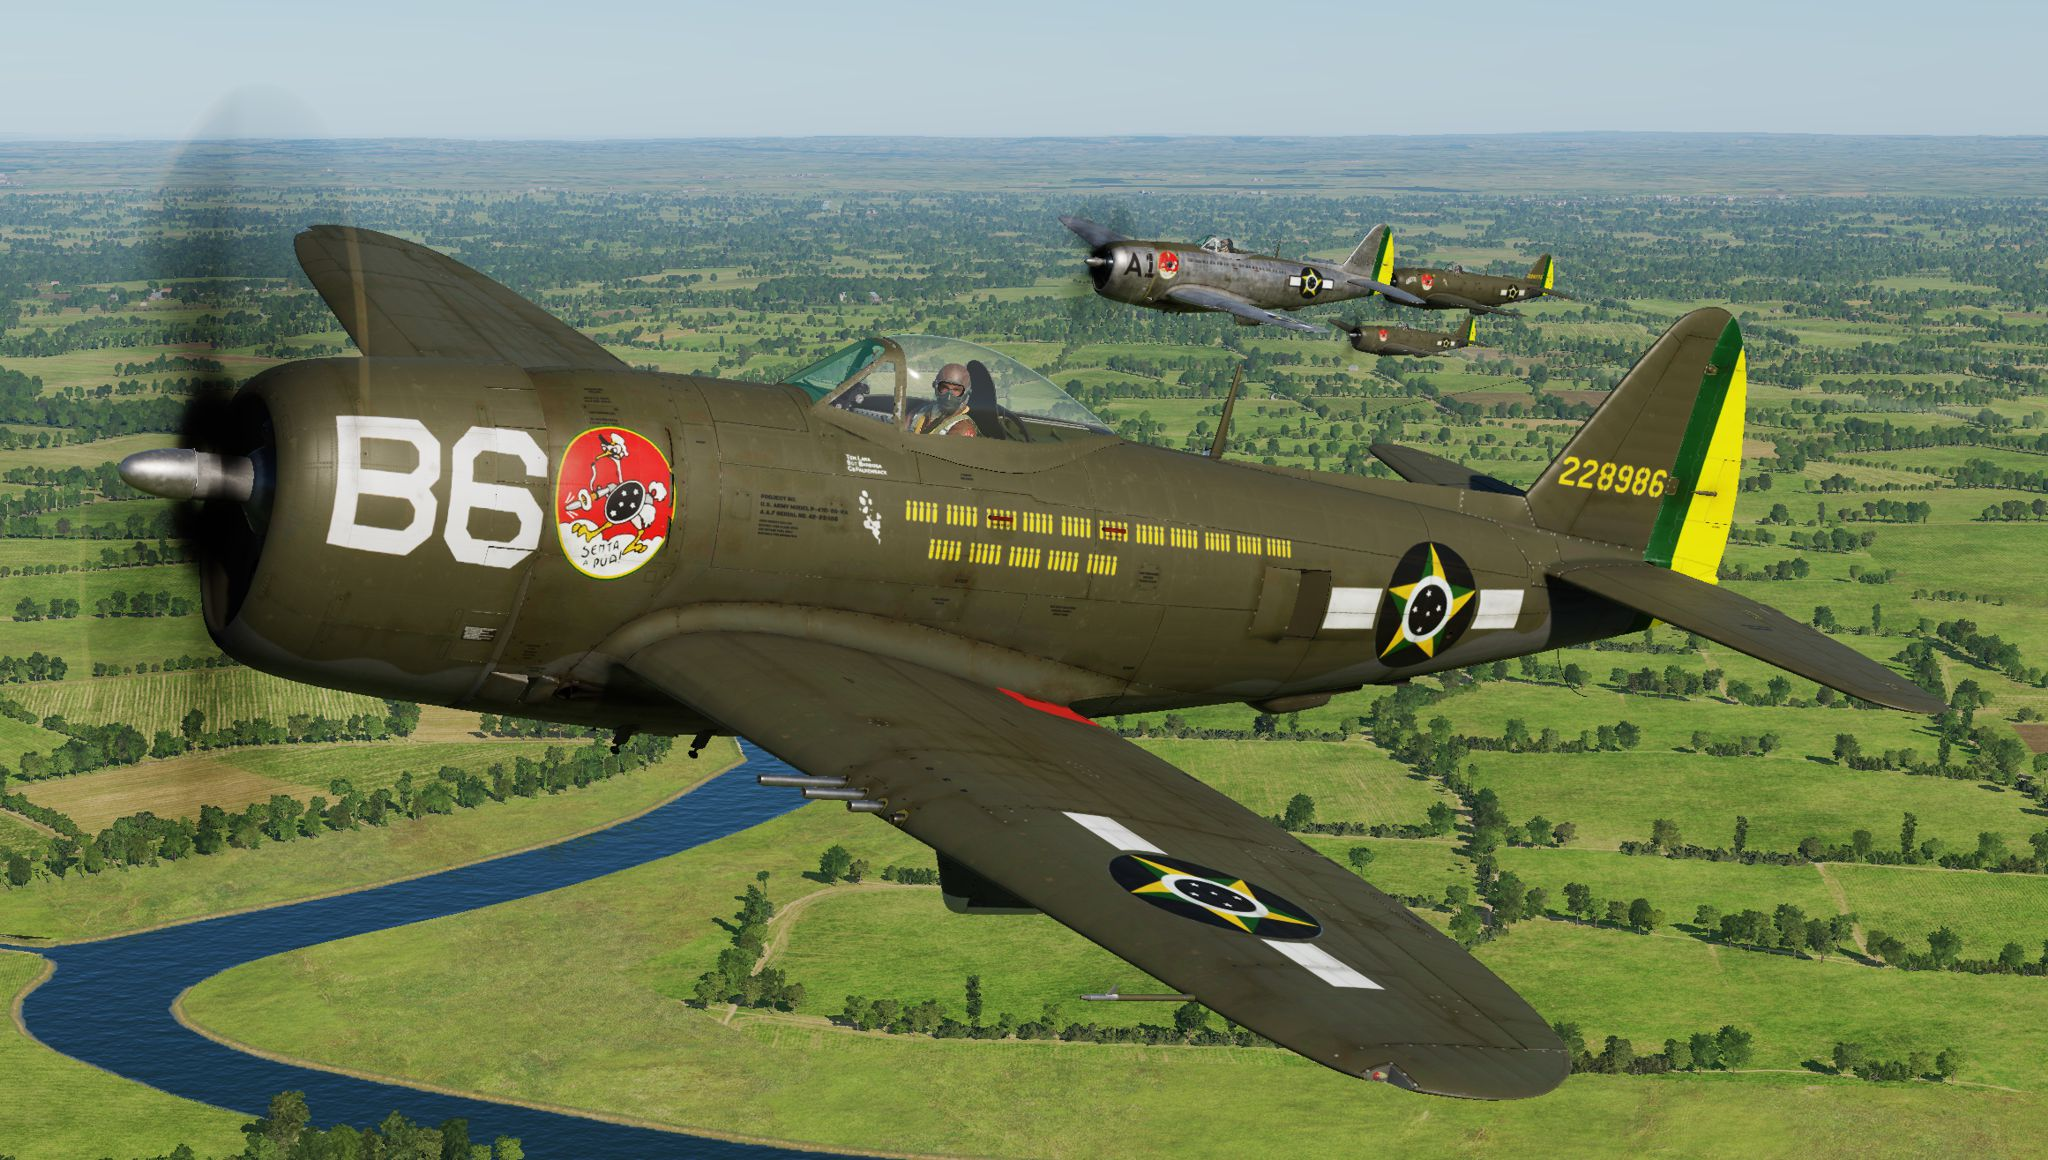 P-47D - 1st Brazilian Ftr Sq-Jambock B6-2nd Lt. Lara (update vs 2.2)